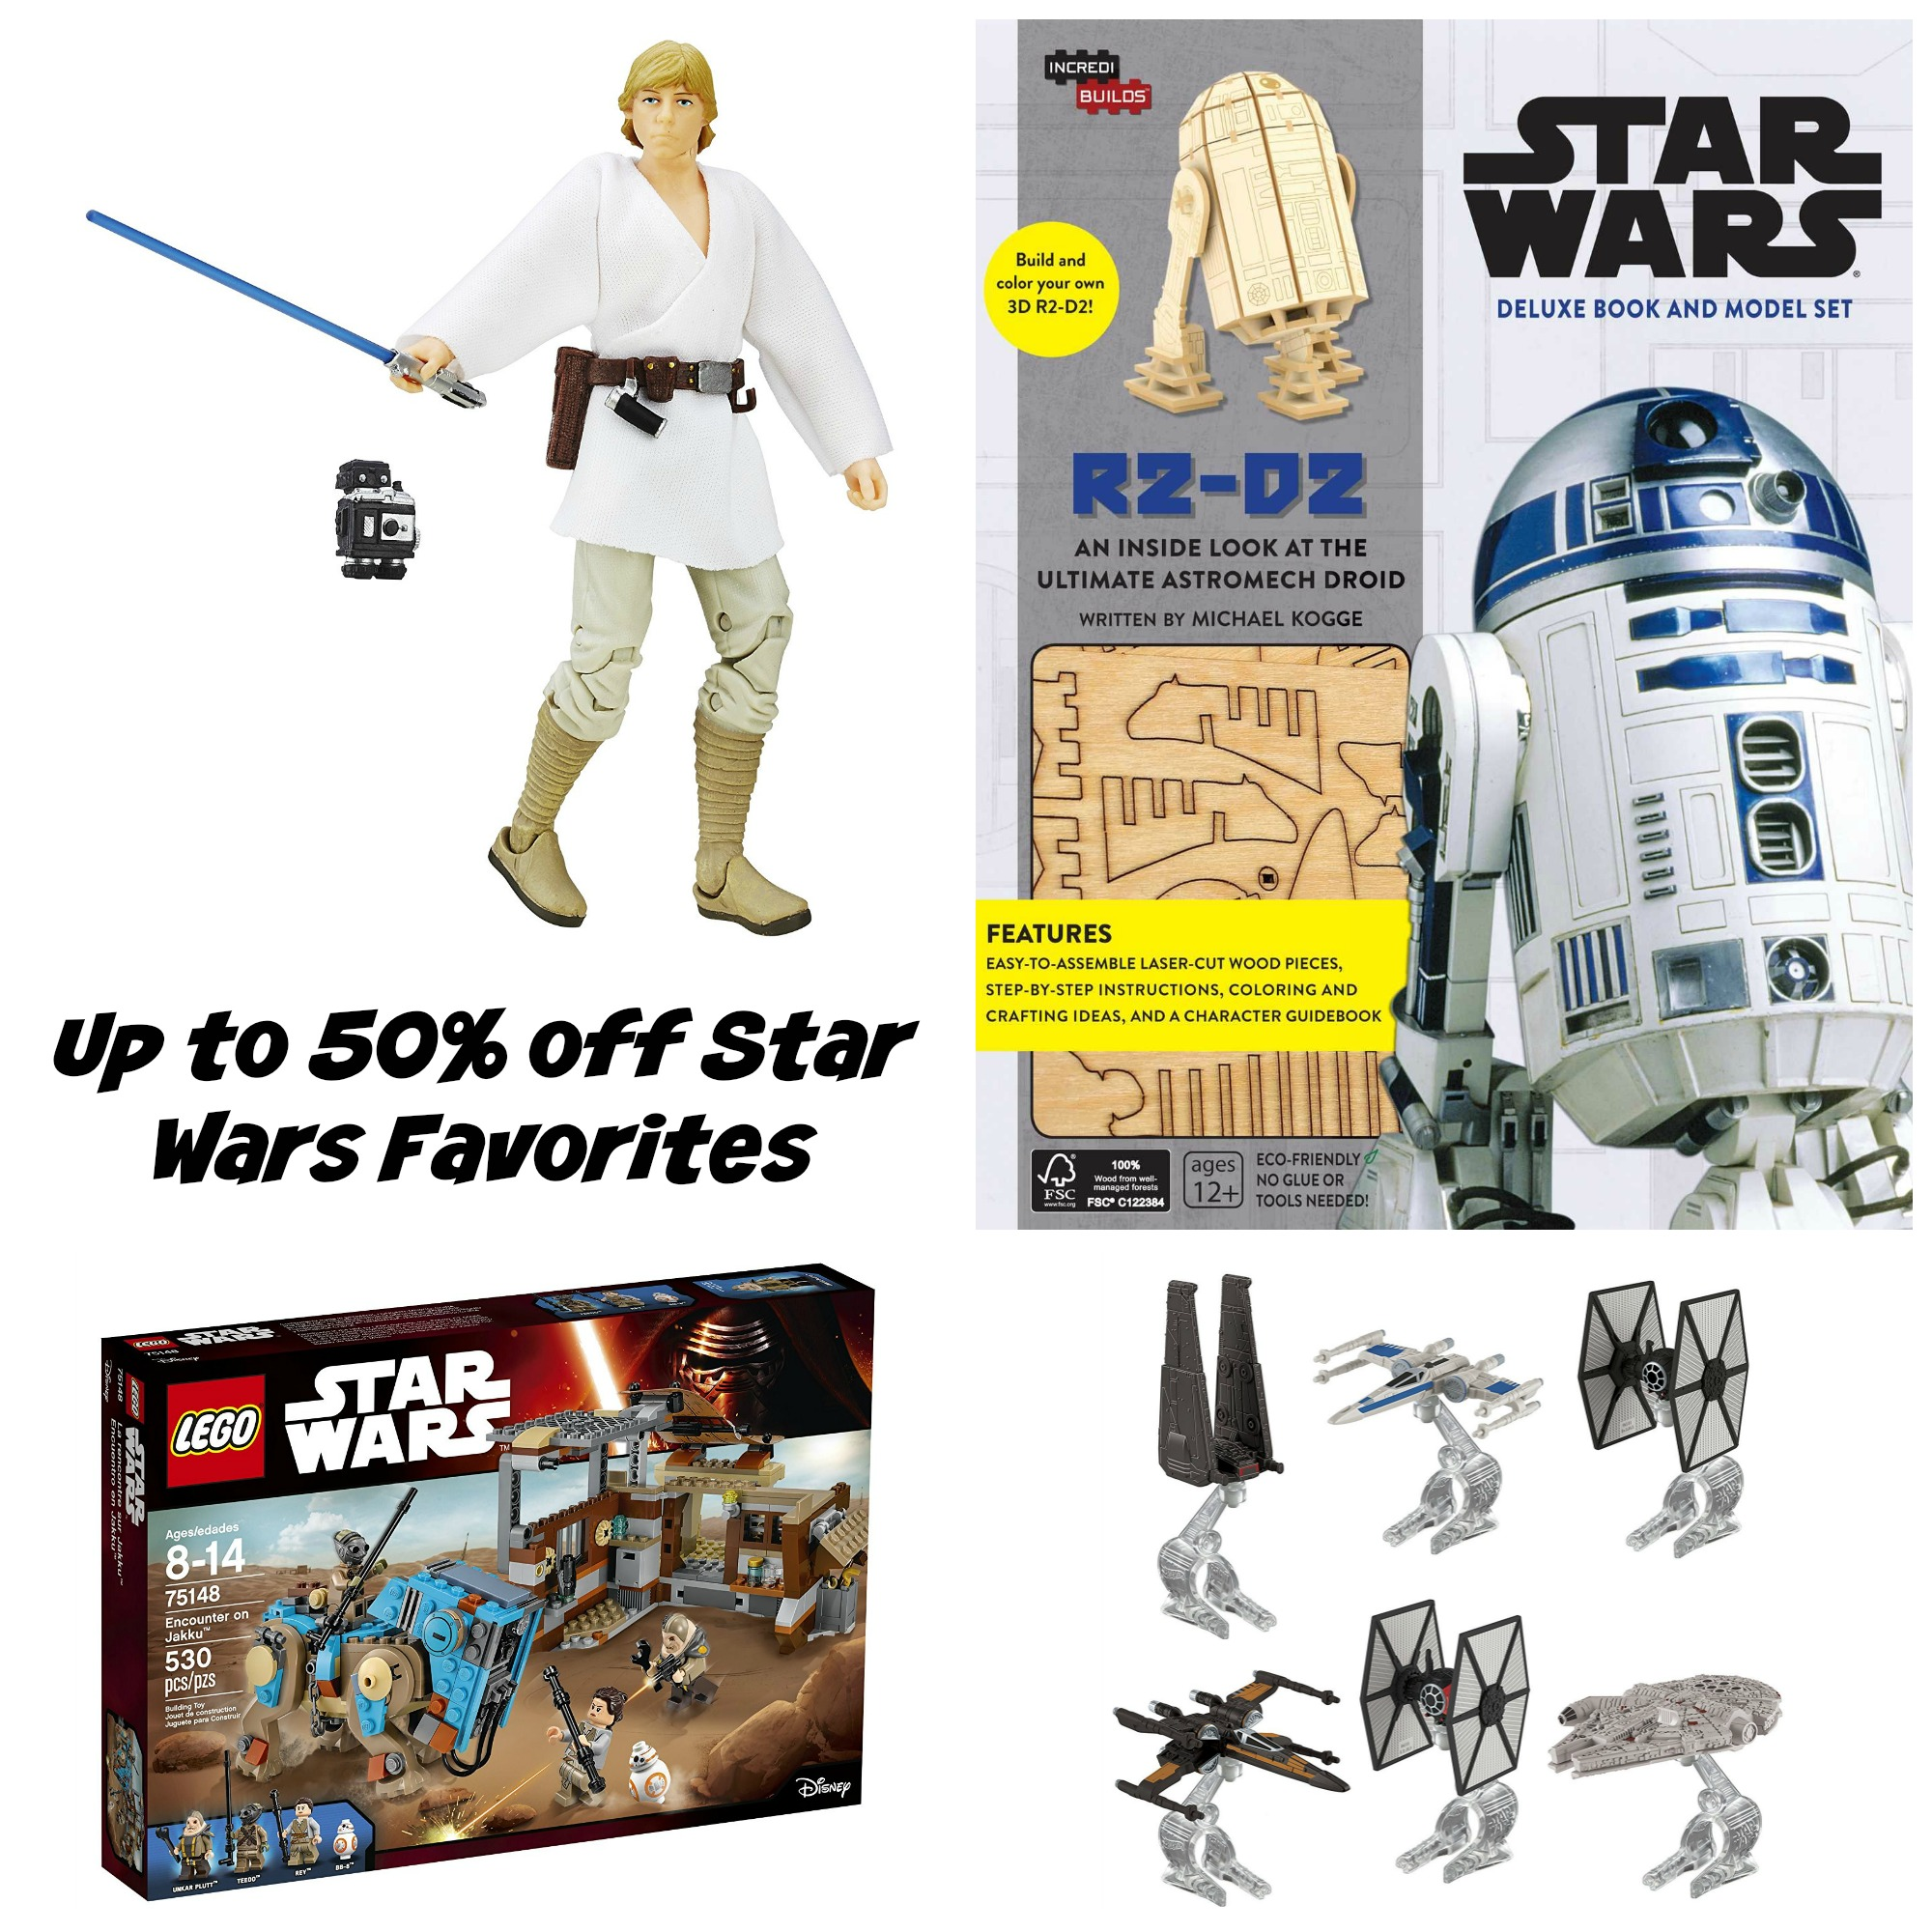 Up to 50% off Green Toys and Star Wars Favorites - Amazon Deal of the Day